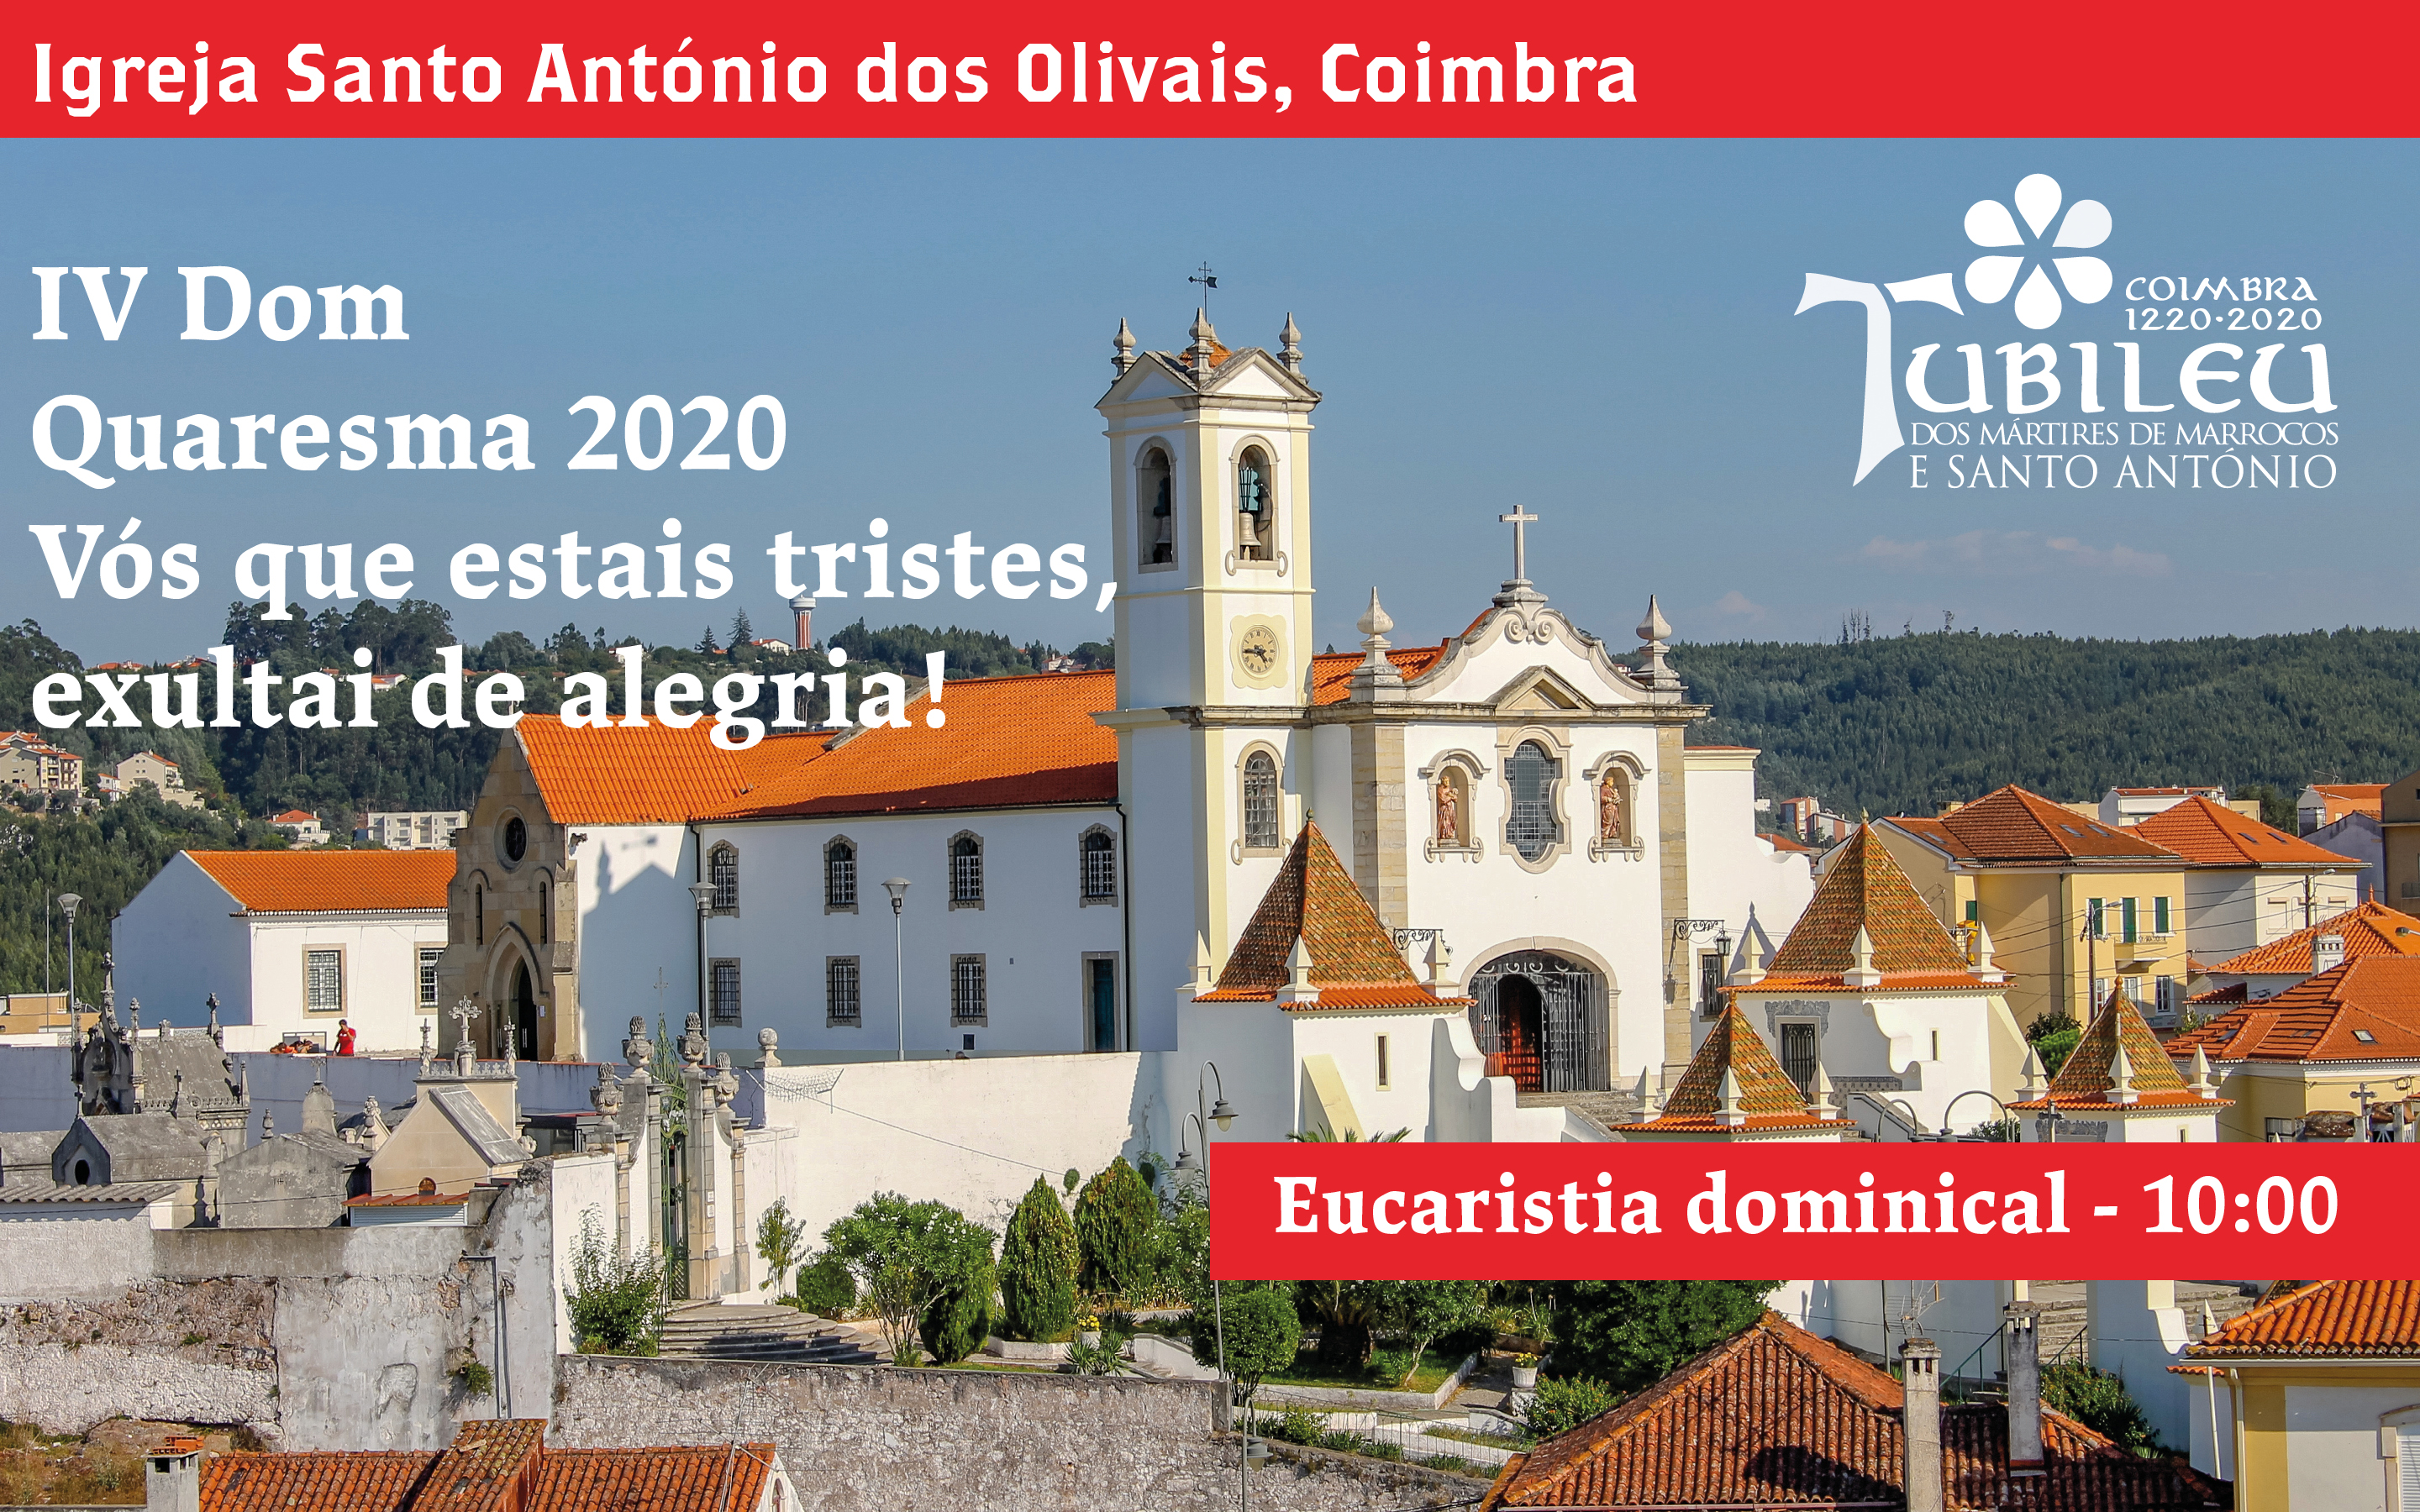 Quaresma 2020: Eucaristia dominical - 10 horas